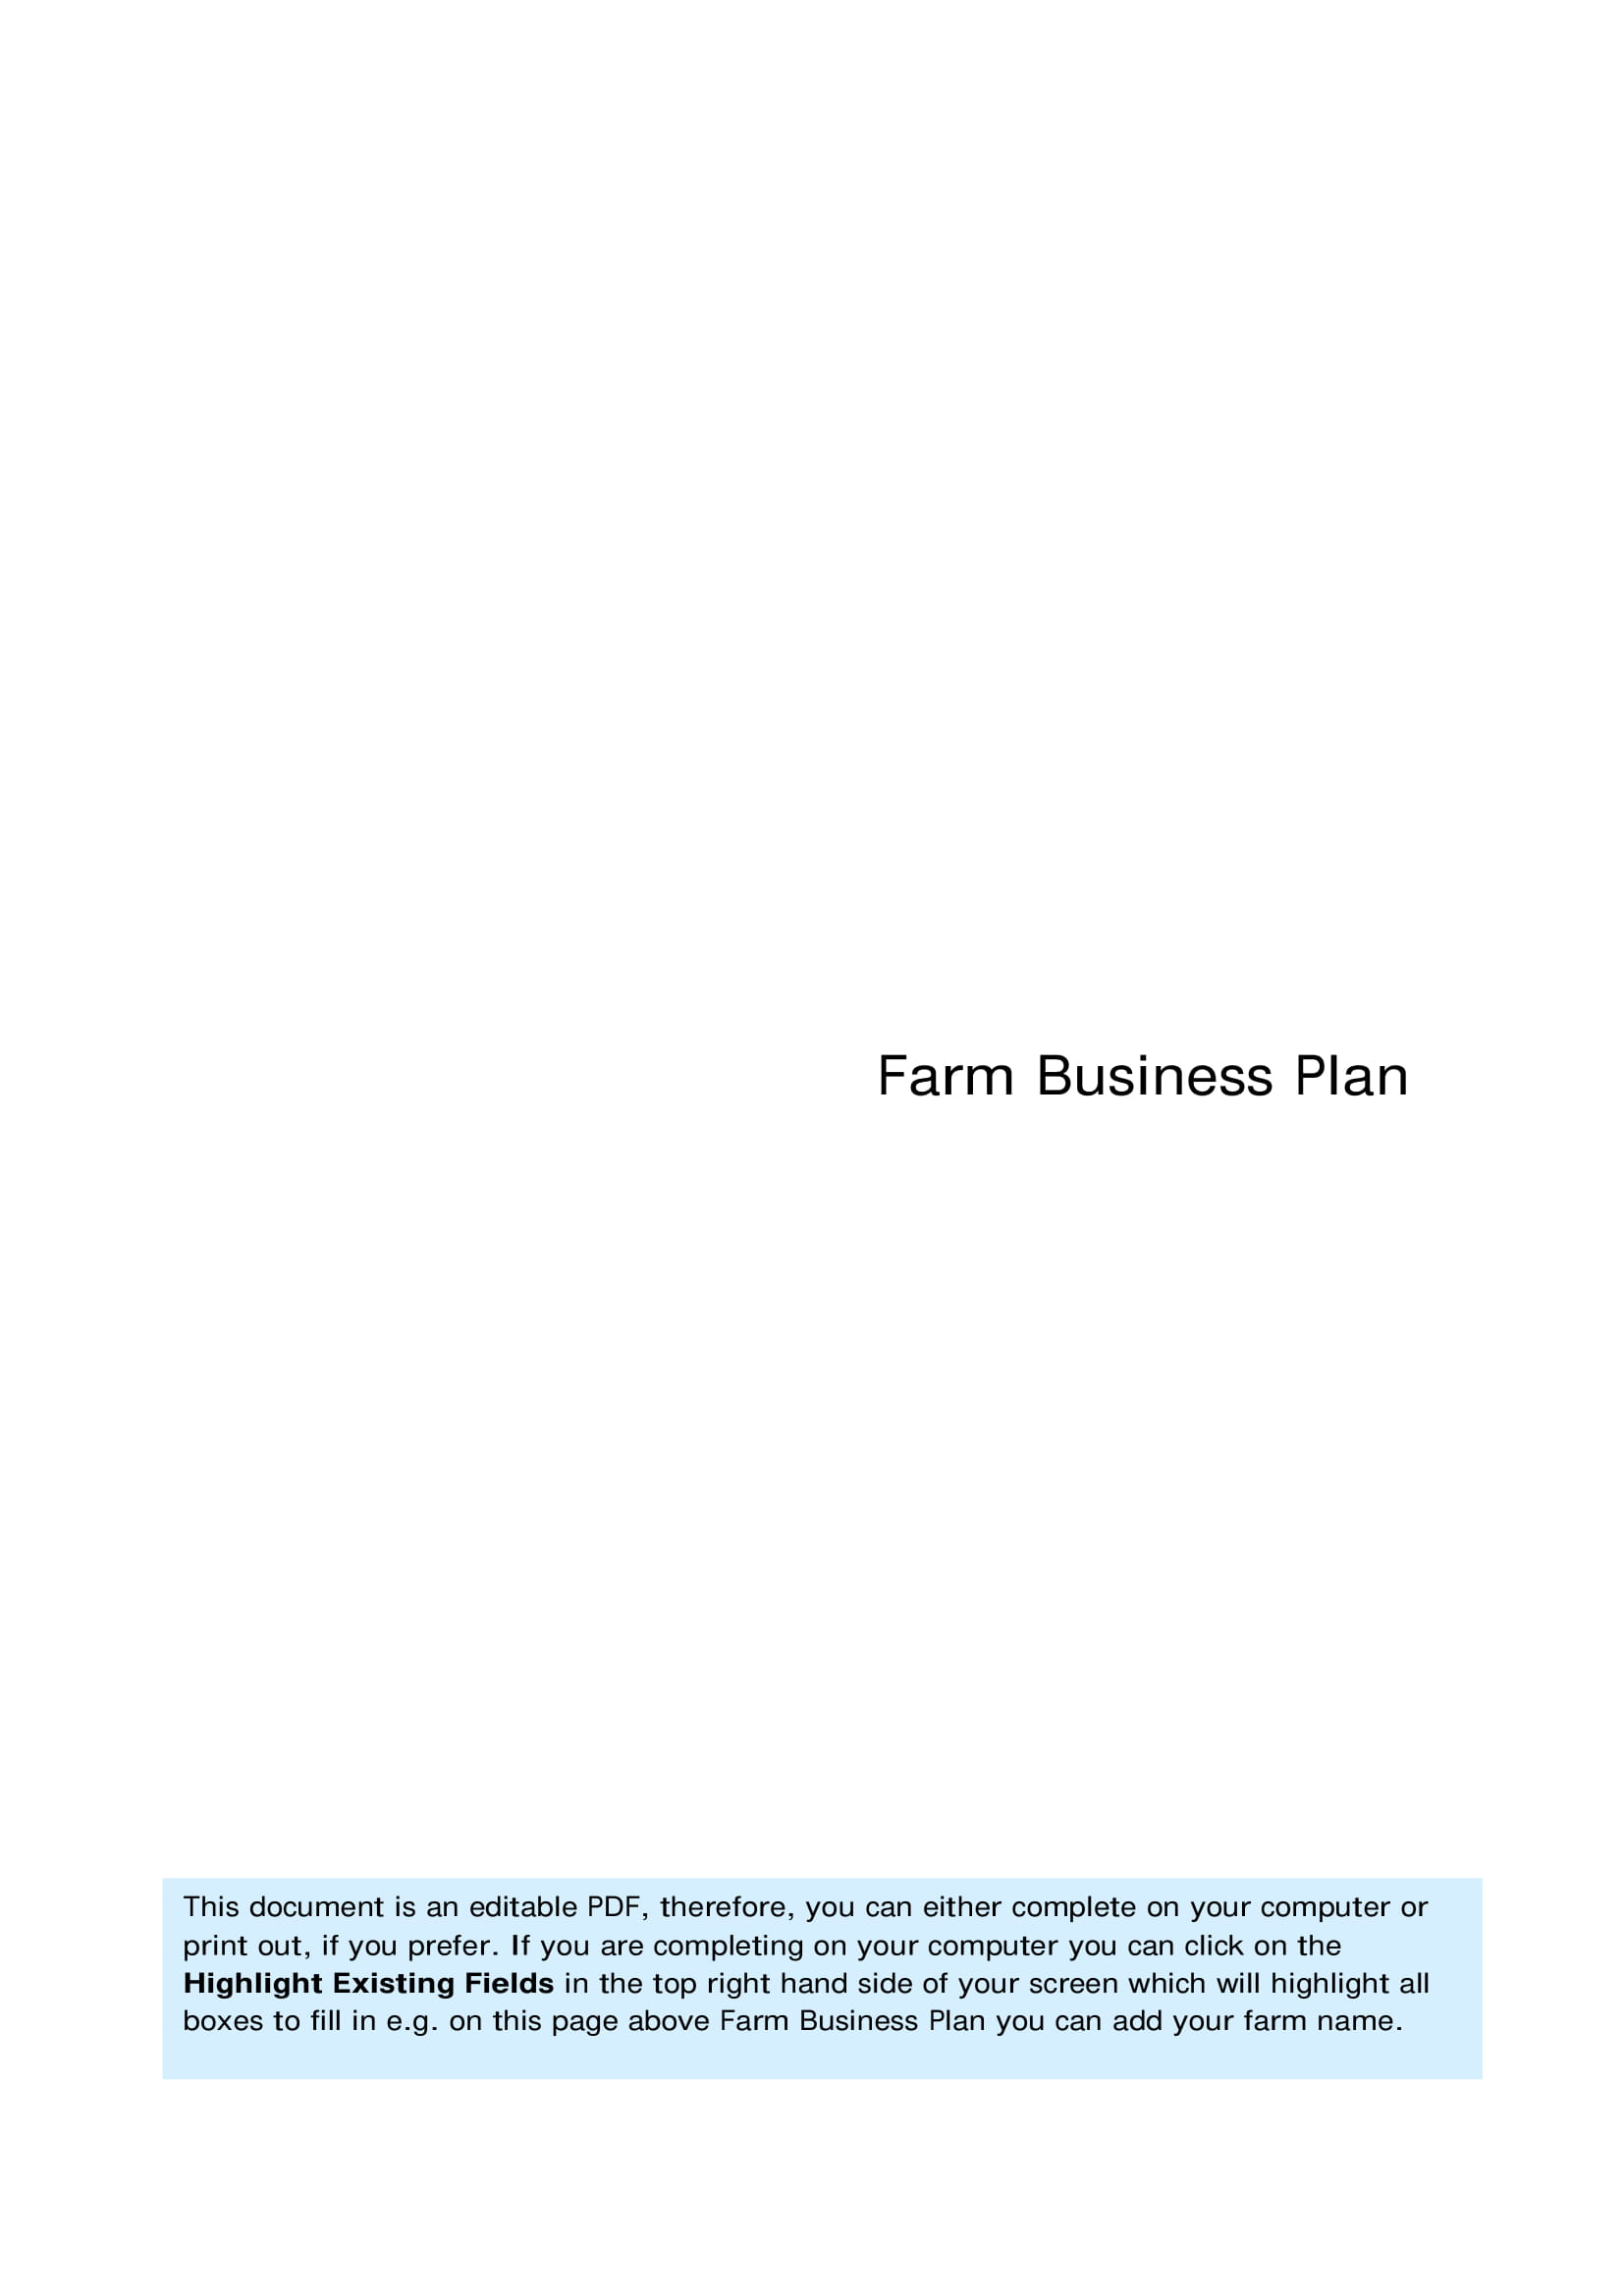 farm business plan example 01